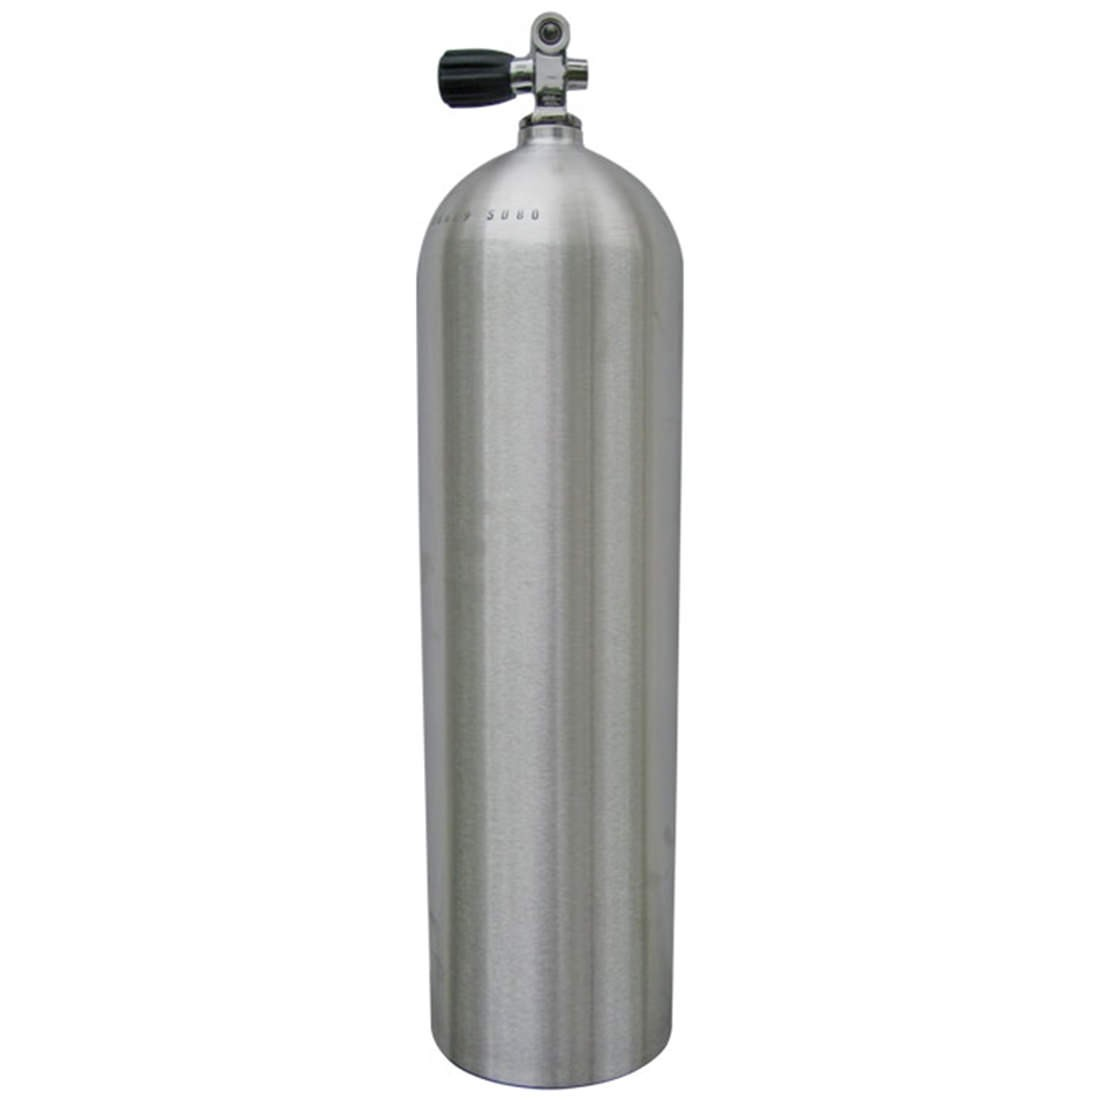 XS SCUBA AL100 Aluminum SCUBA Cylinder with Pro Valve - Brushed No Coat